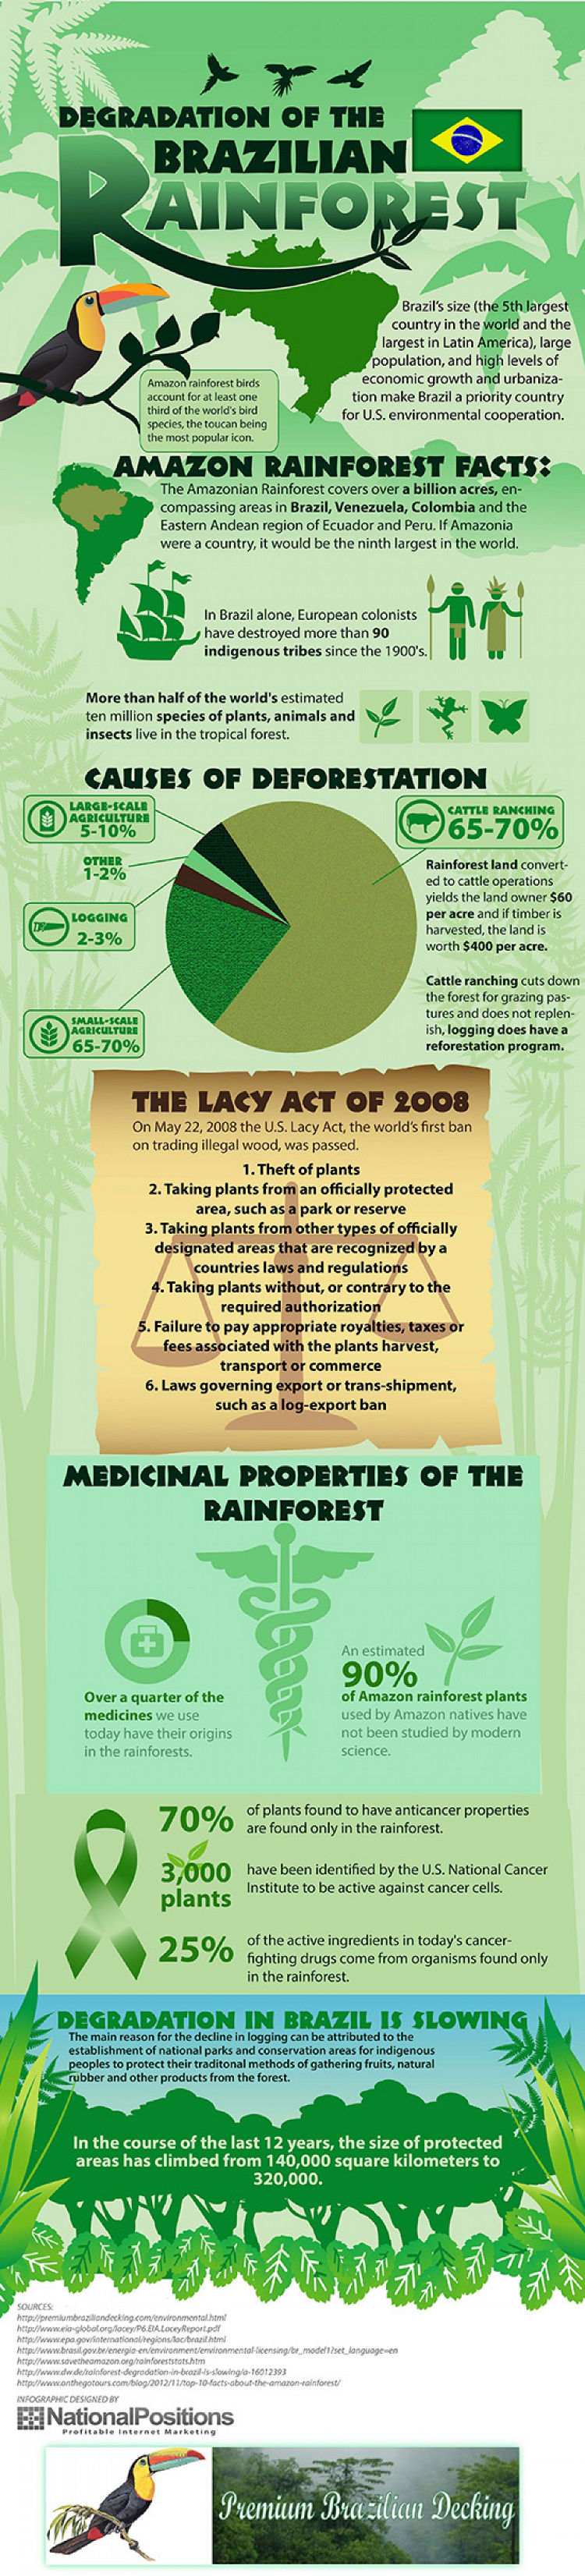 Rainforest Deforestation Facts and Trends